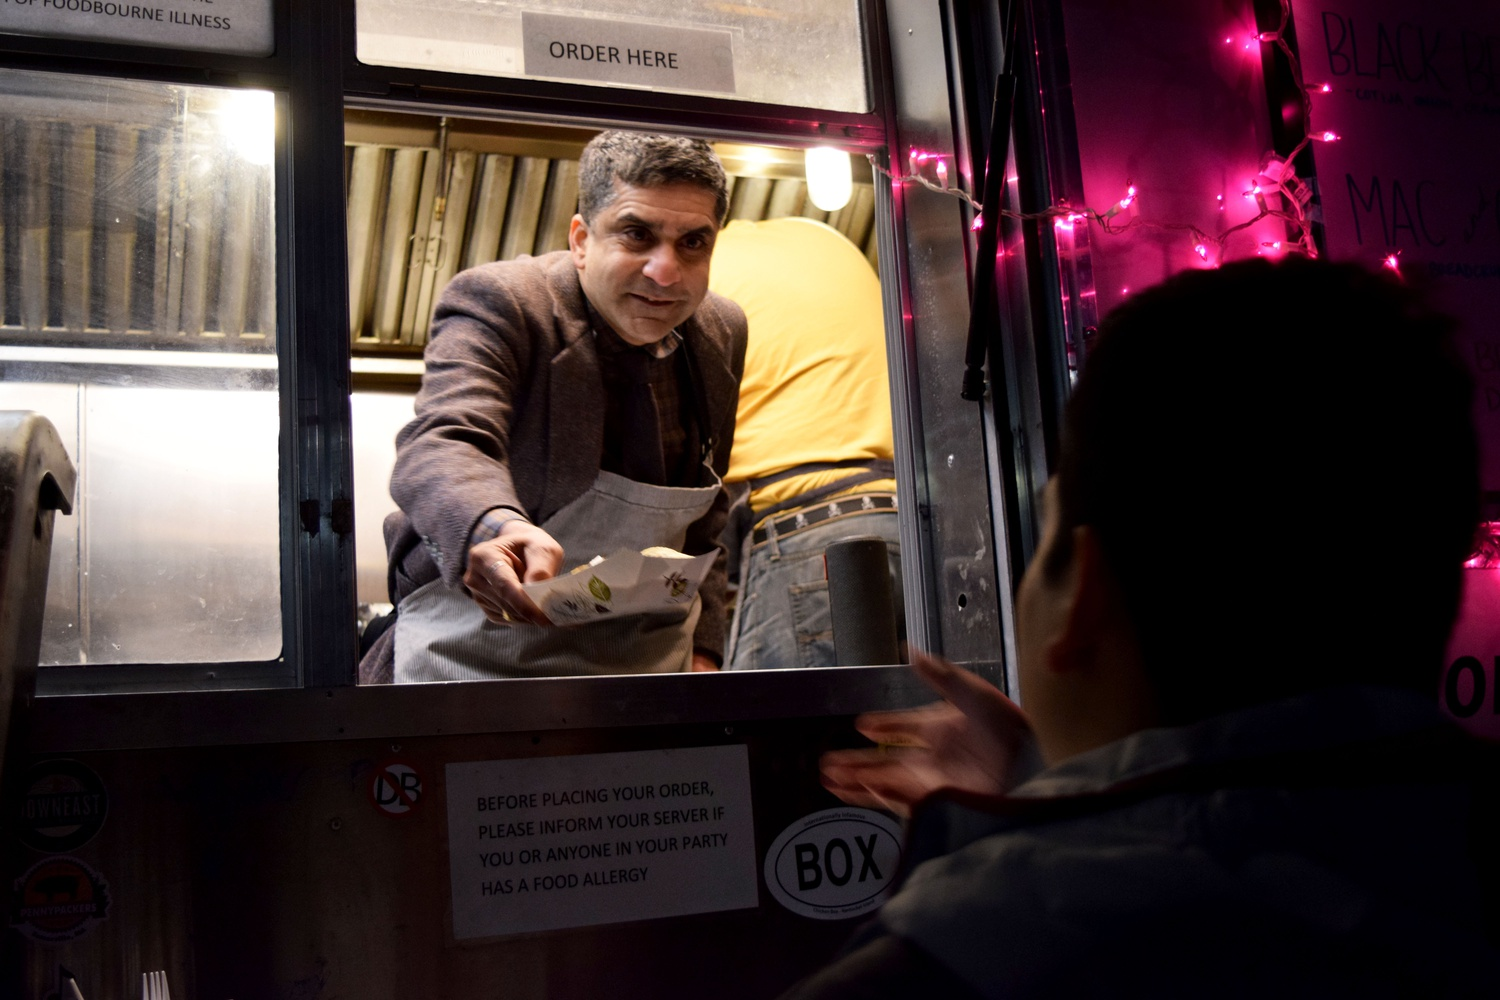 Dean of the College Rakesh Khurana hands out tacos to students Monday night outside Cabot House as a stress reliever during reading period.